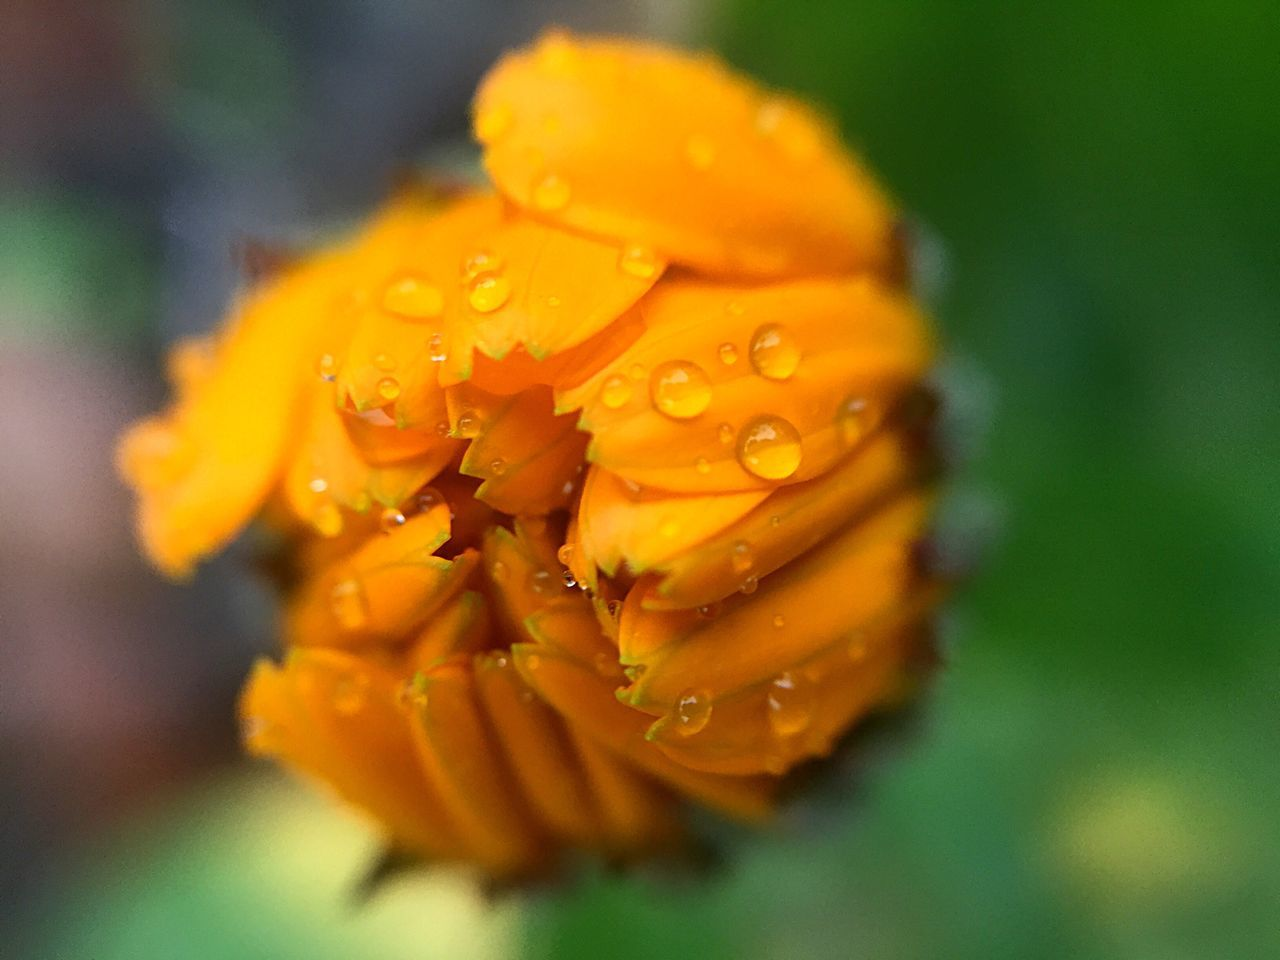 flower, petal, beauty in nature, freshness, orange color, nature, fragility, drop, flower head, growth, wet, close-up, water, plant, blooming, outdoors, selective focus, no people, day, raindrop, stamen, yellow, springtime, day lily